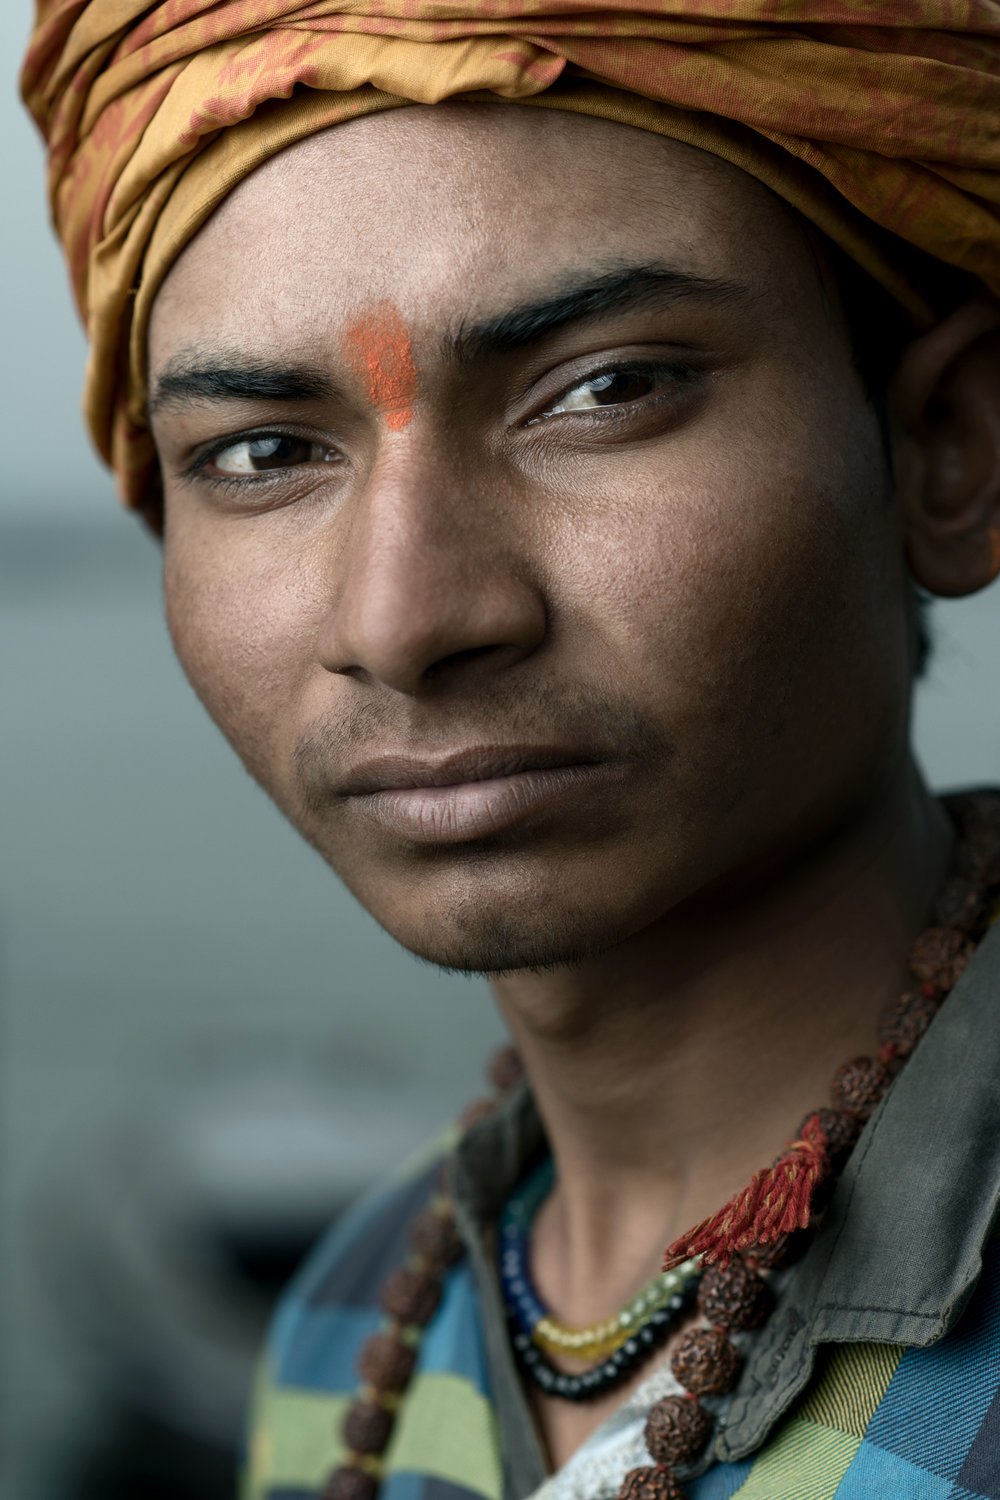 Varanasi_portrait_travel_photography_Manchester_Adventure_Photographer_Jan_Bella11.jpg